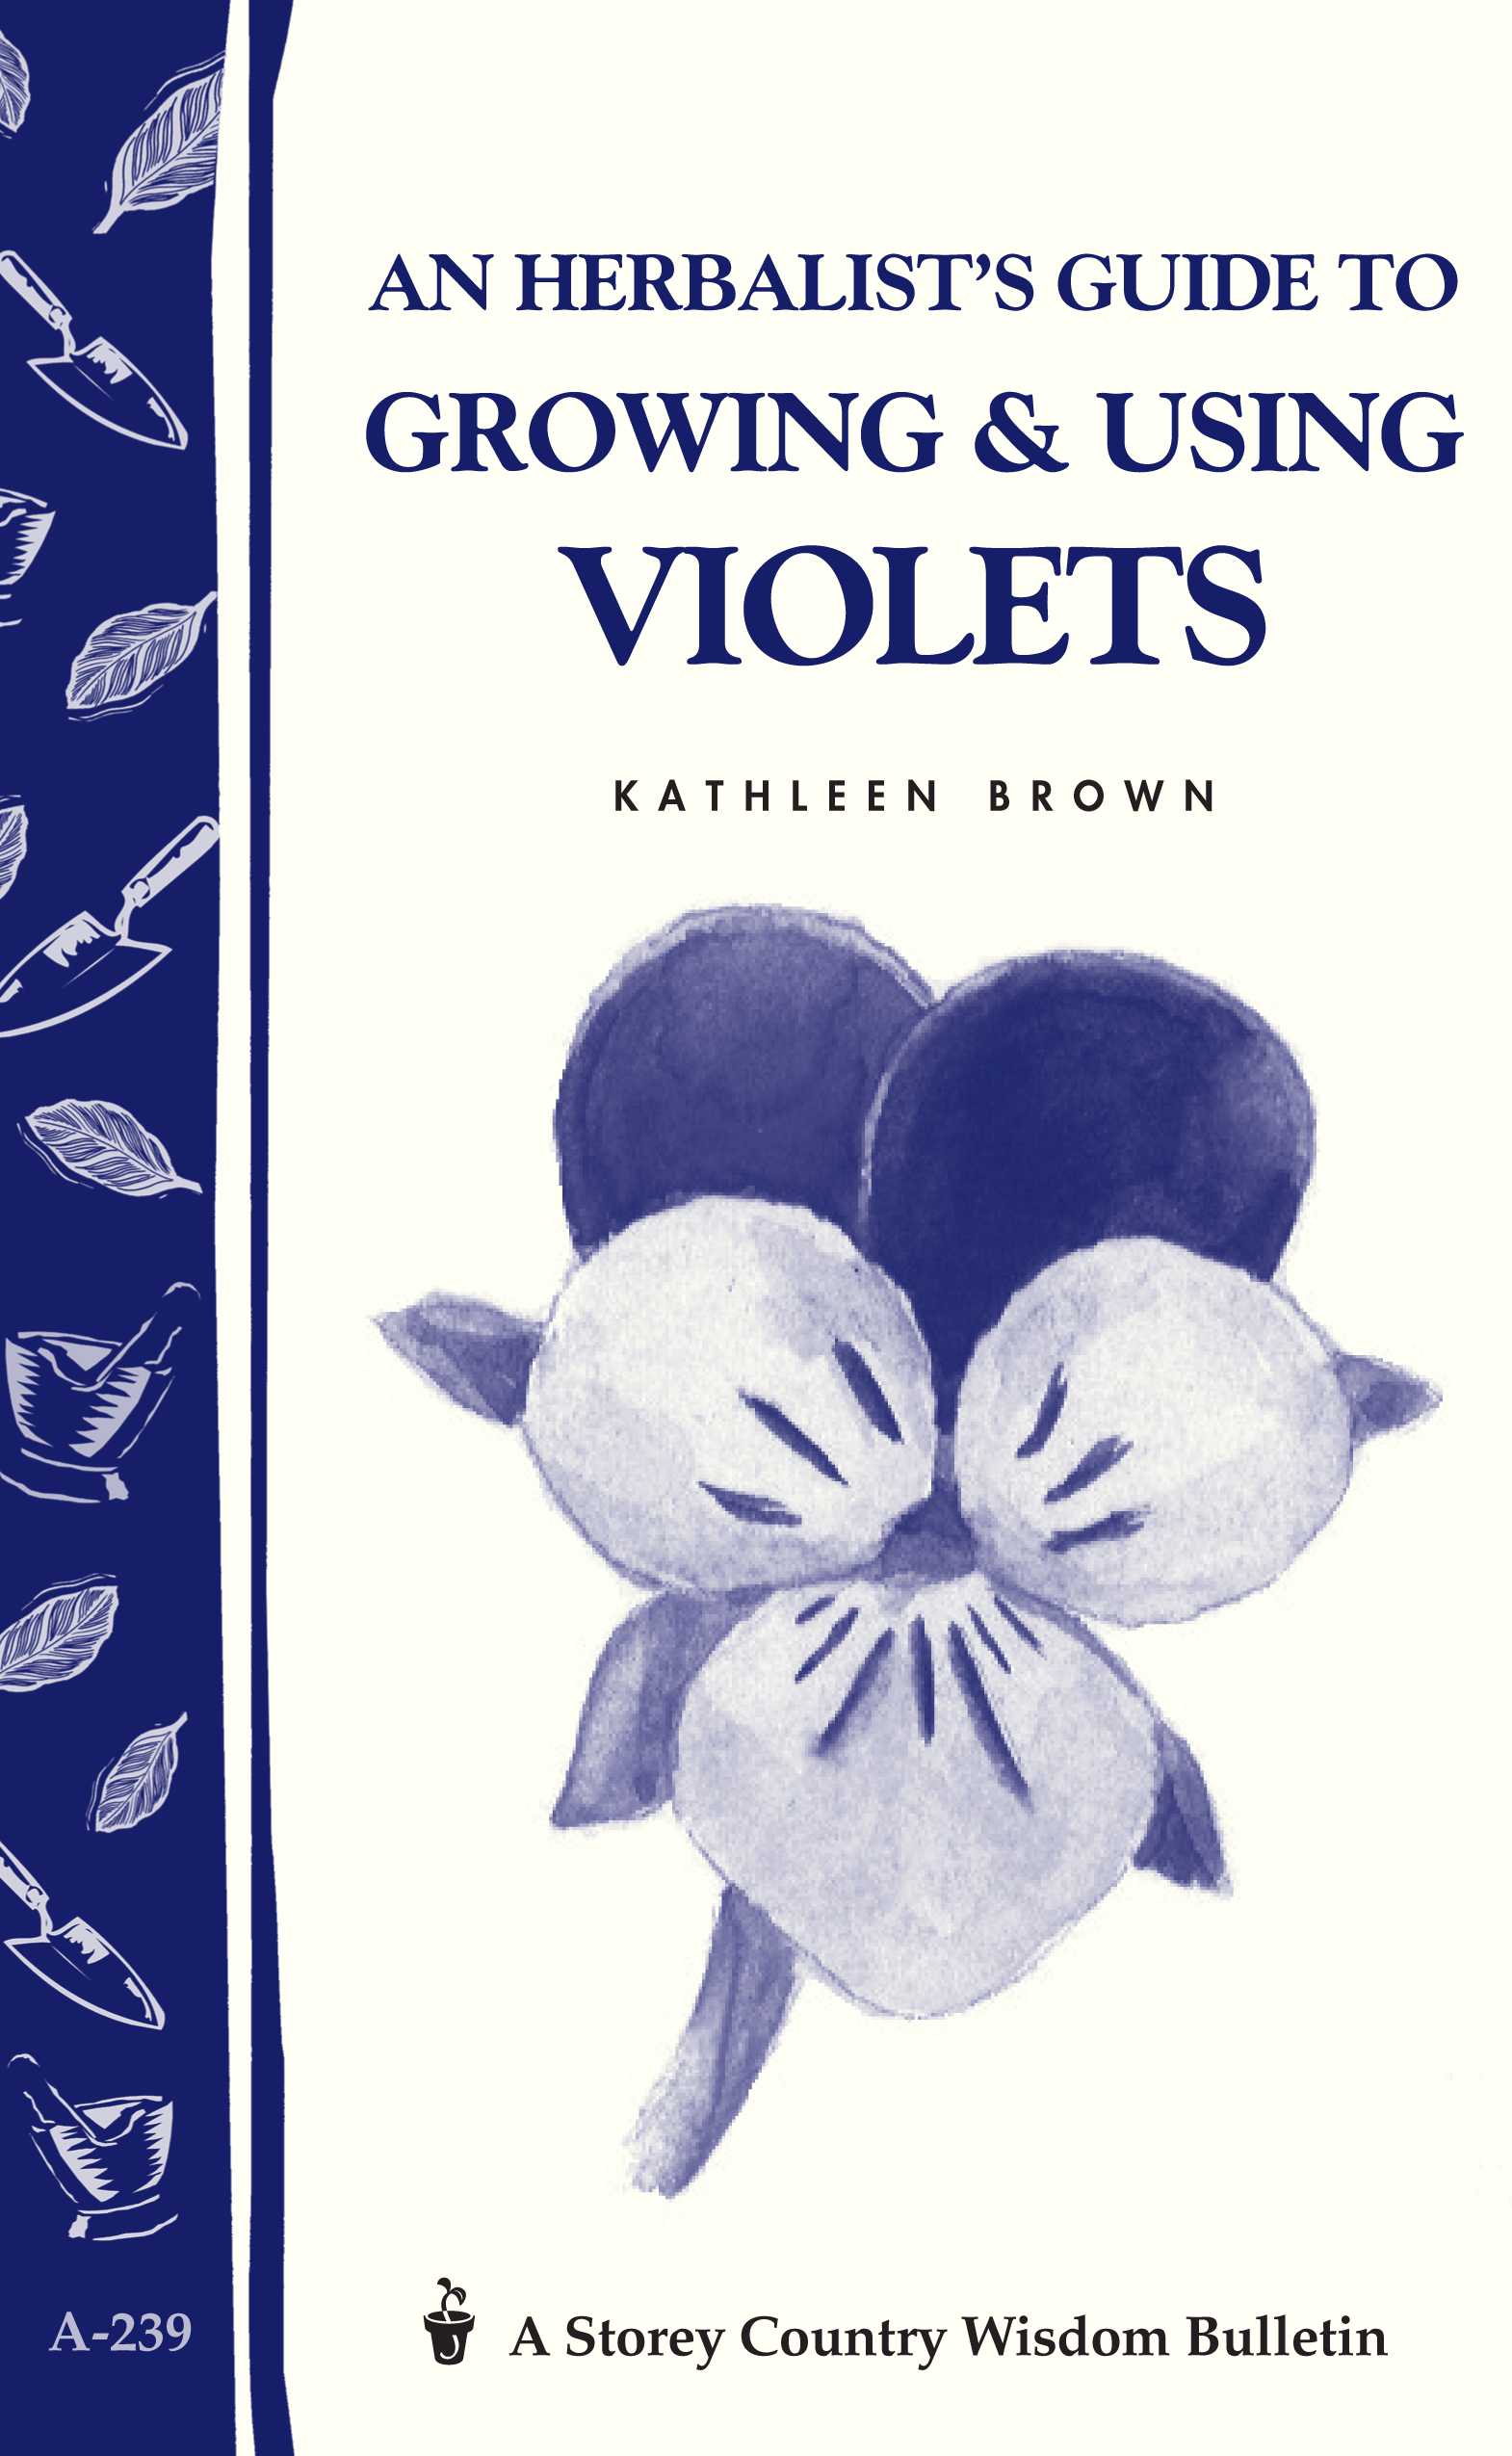 An Herbalist's Guide to Growing & Using Violets  - Kathleen Brown